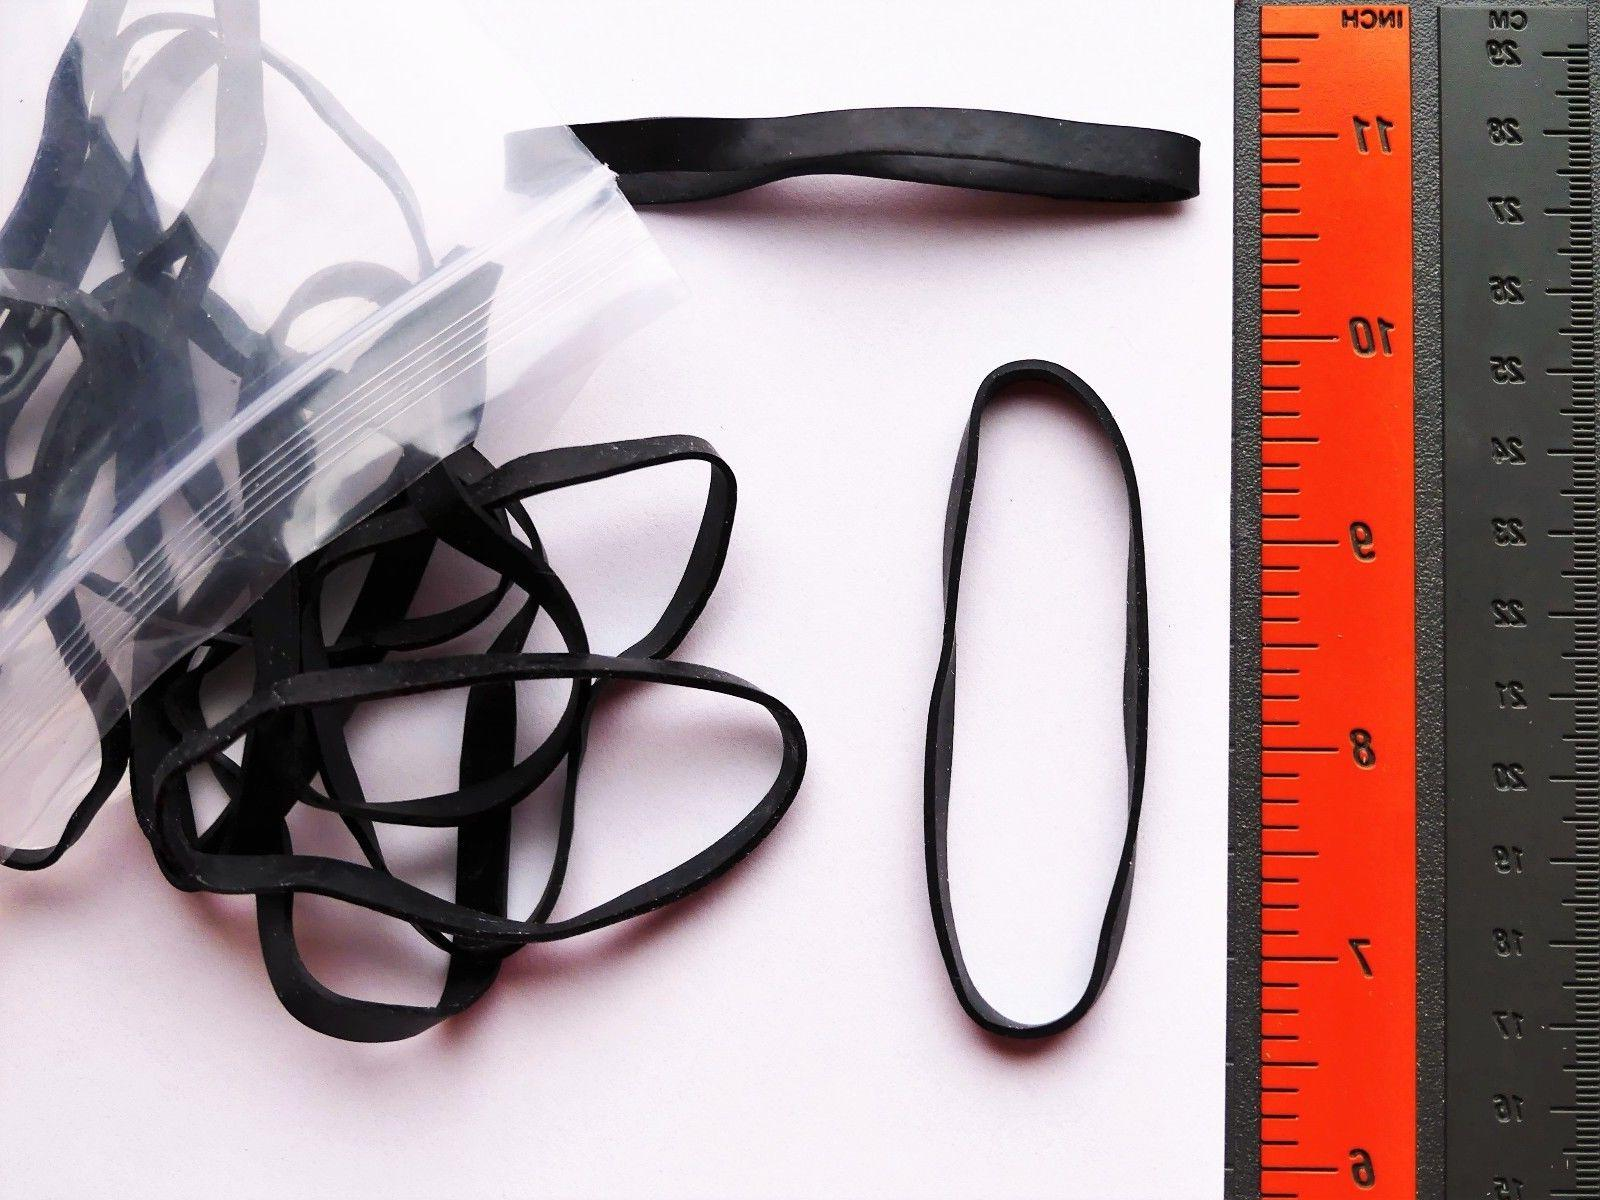 HEAVY-DUTY LARGE BLACK BANDS Resist the